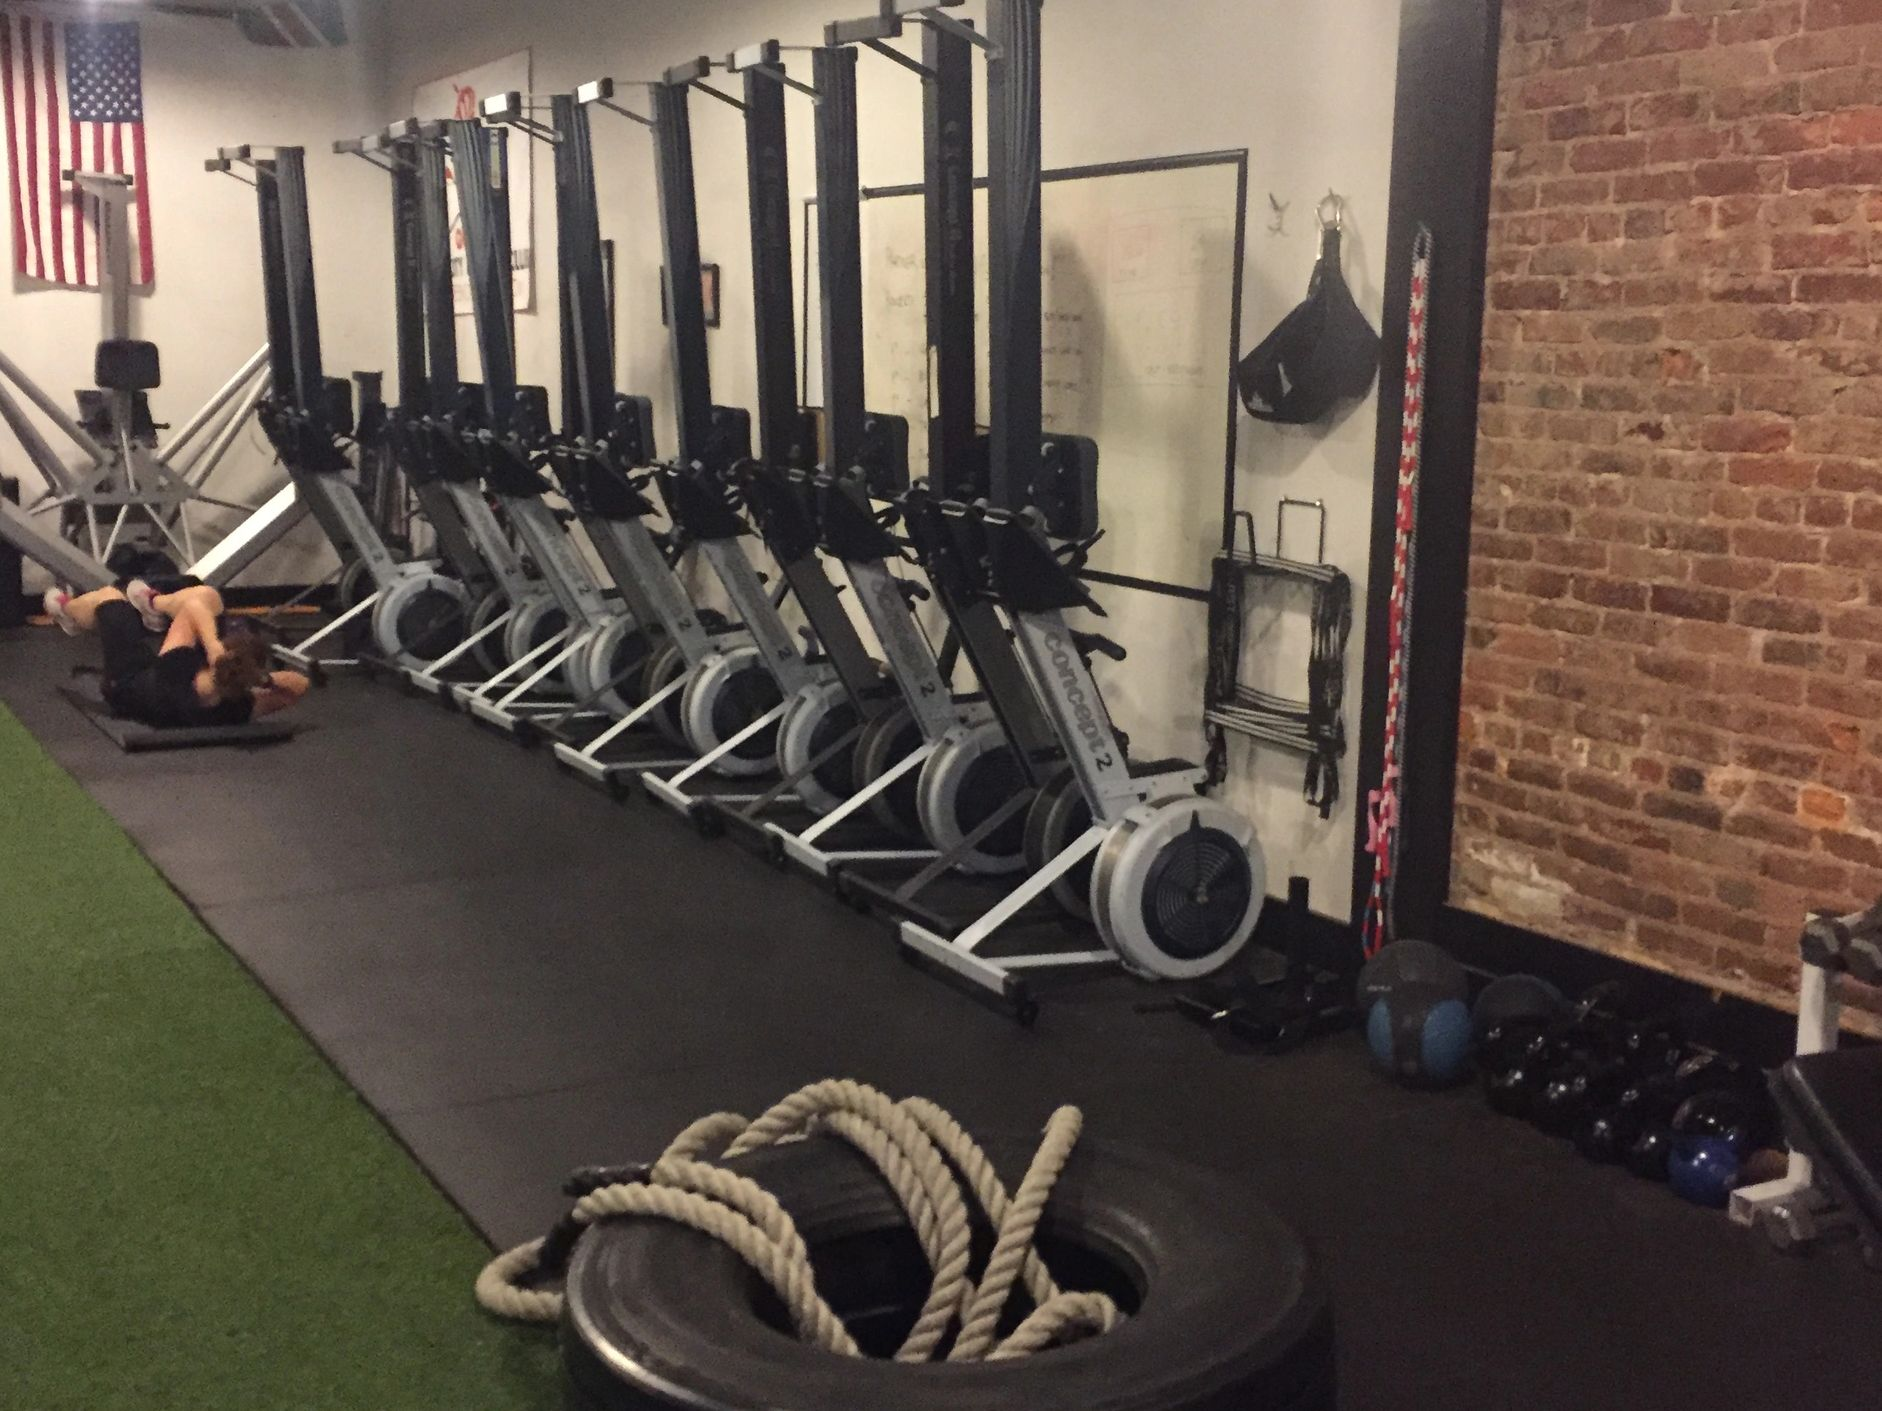 Open gym membership includes the use of rowing machines, weights, simulators and other